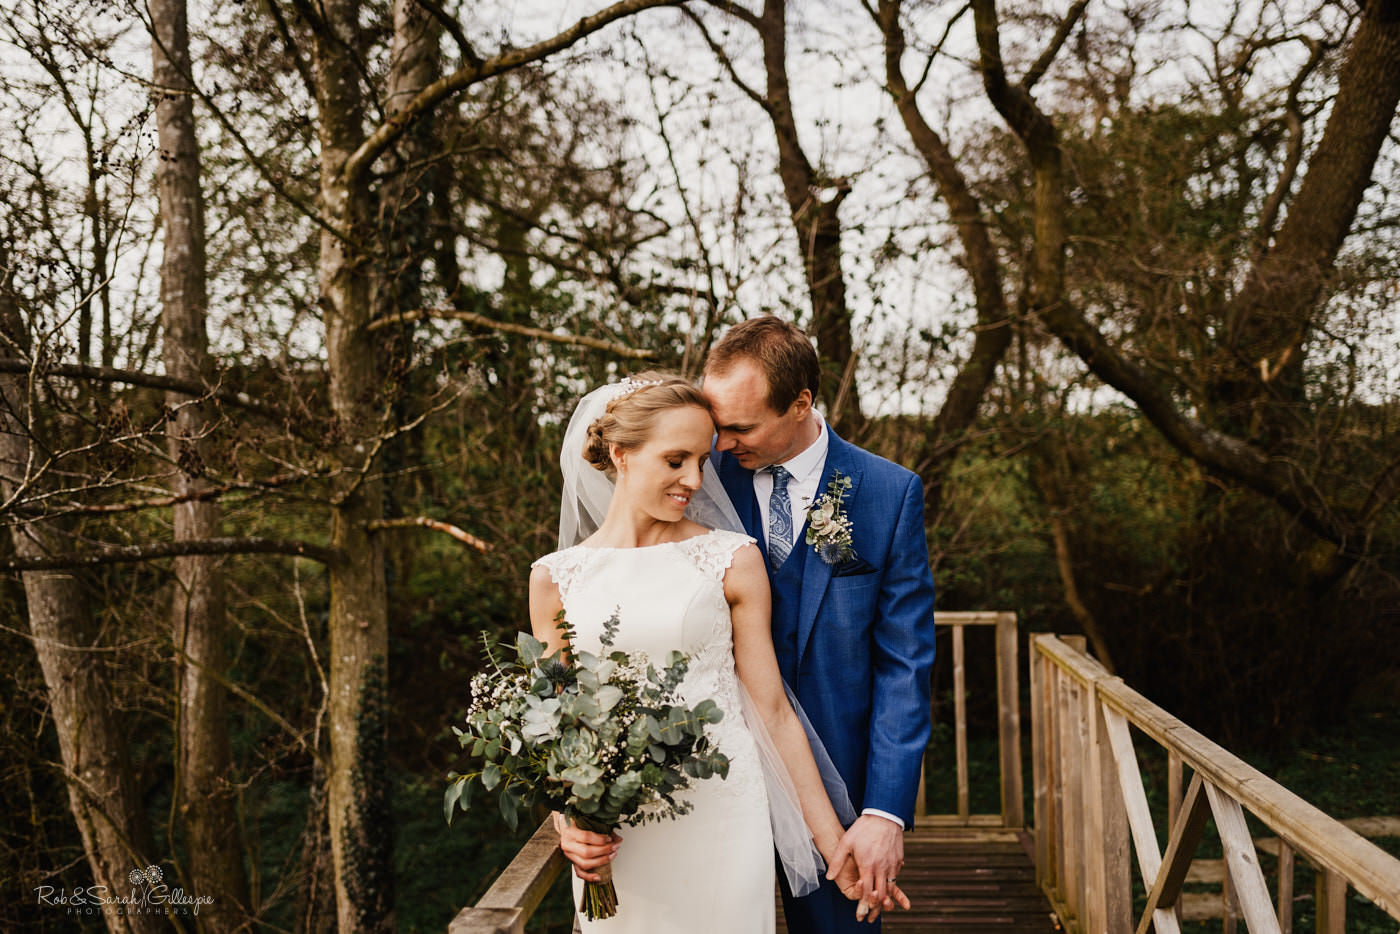 Bride and groom wedding photos at Swallows Nest Barn in Warwickshire